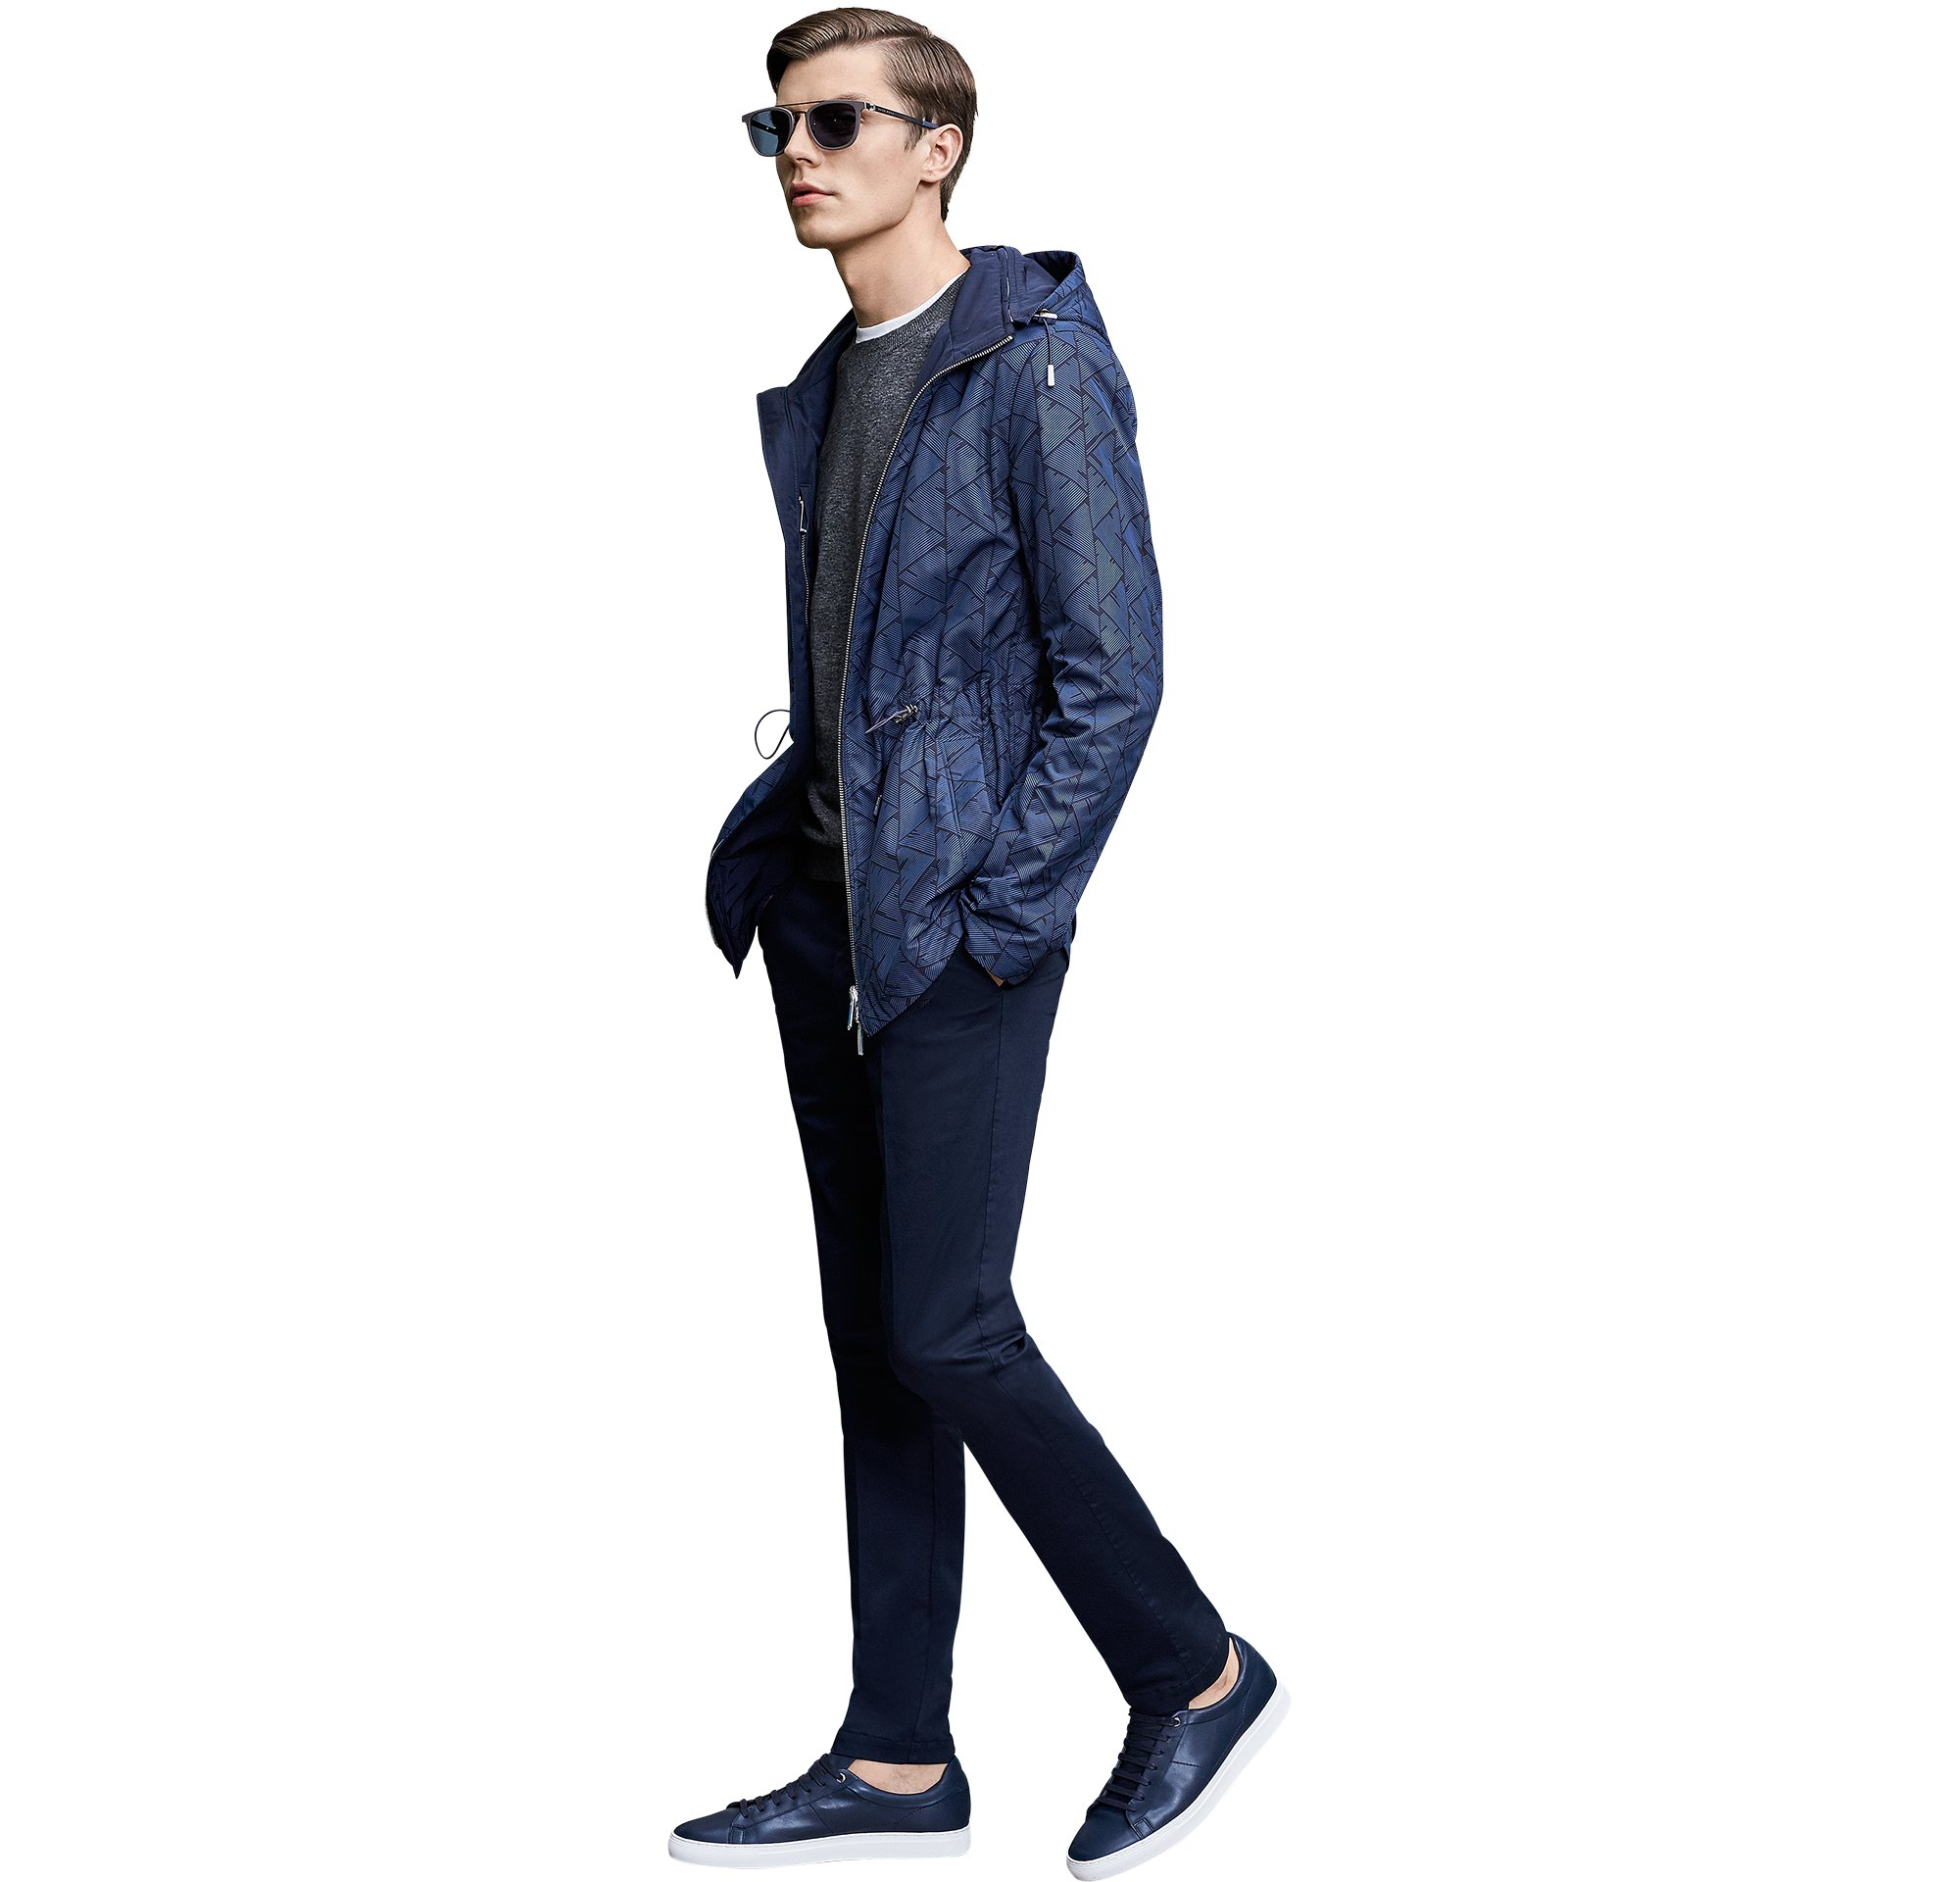 Blue outerwear over jeasey and blue trousers with sneakers by BOSS